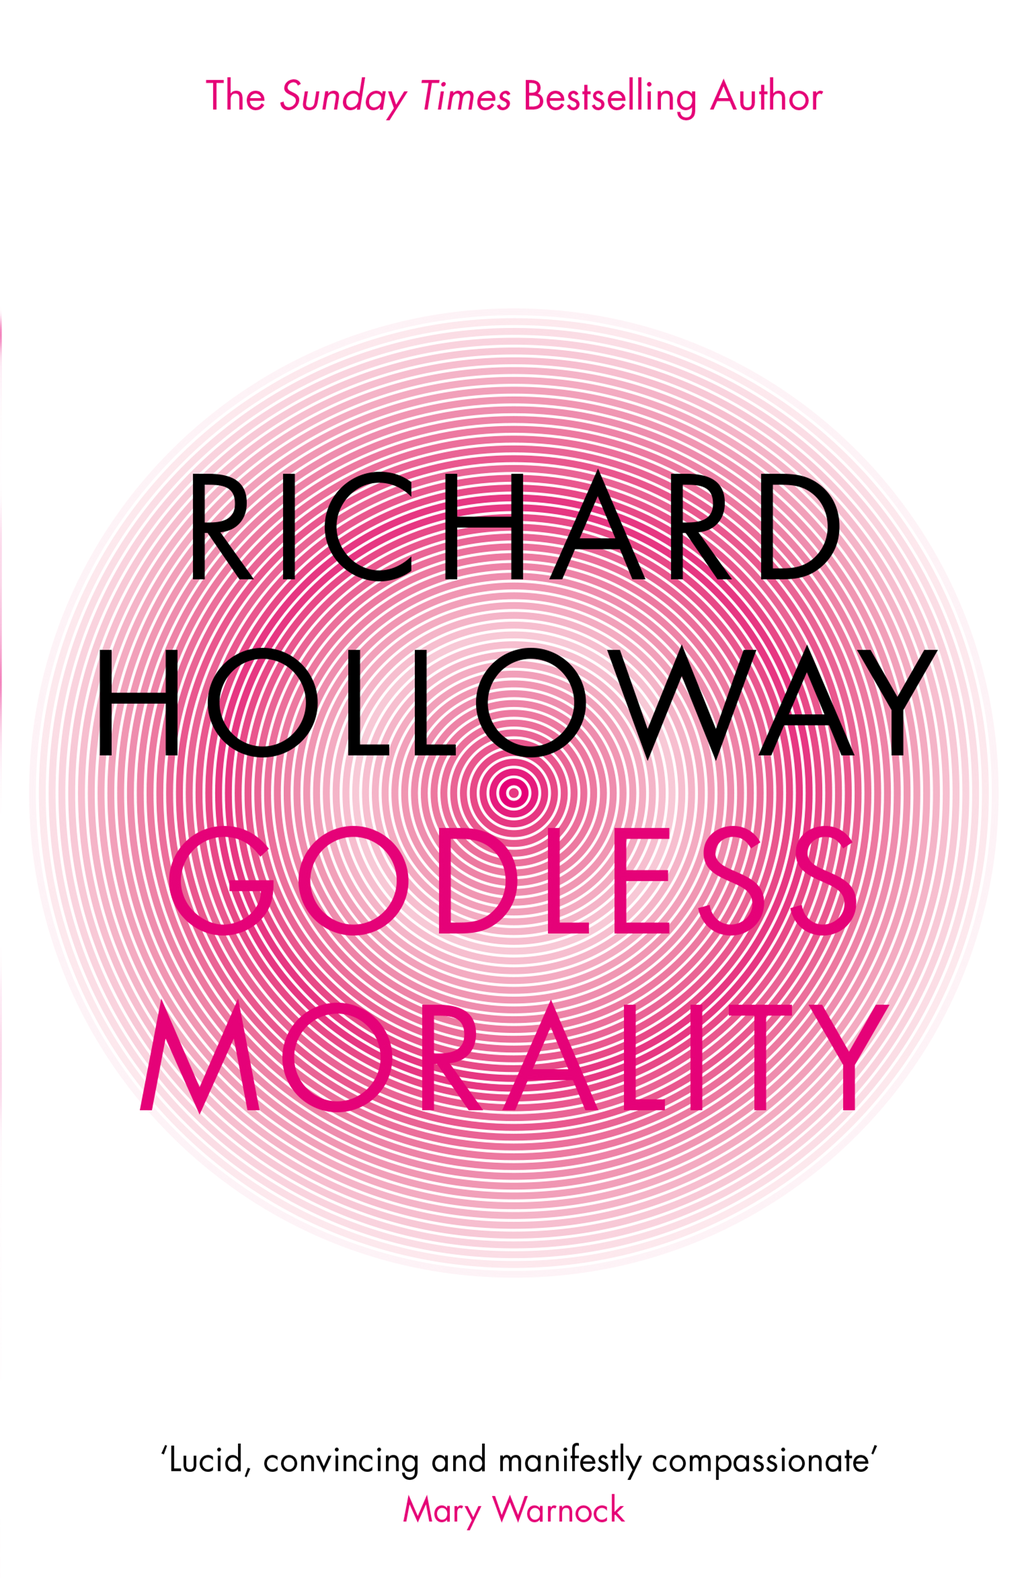 Godless Morality: Keeping Religion Out Of Ethics Keeping Religion Out Of Ethics